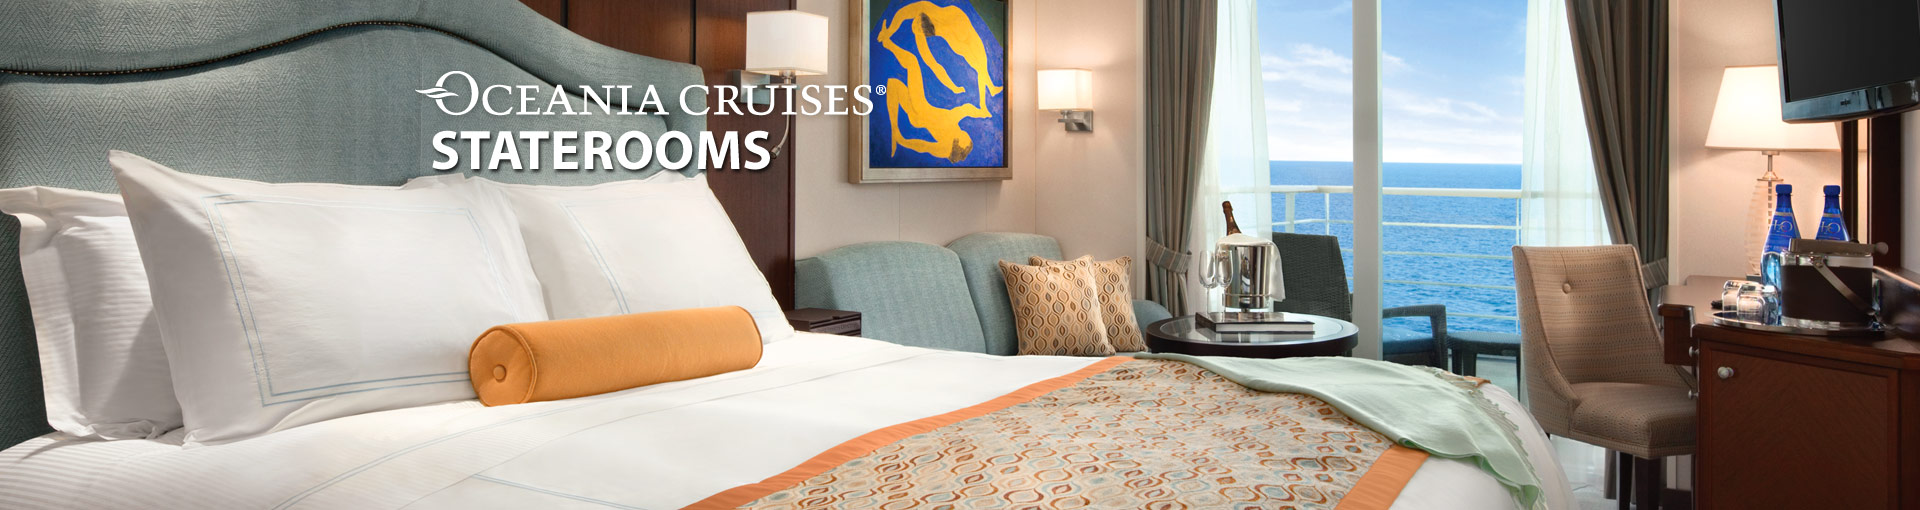 Oceania Cruises Staterooms - Onboard Accommodations, Cabin